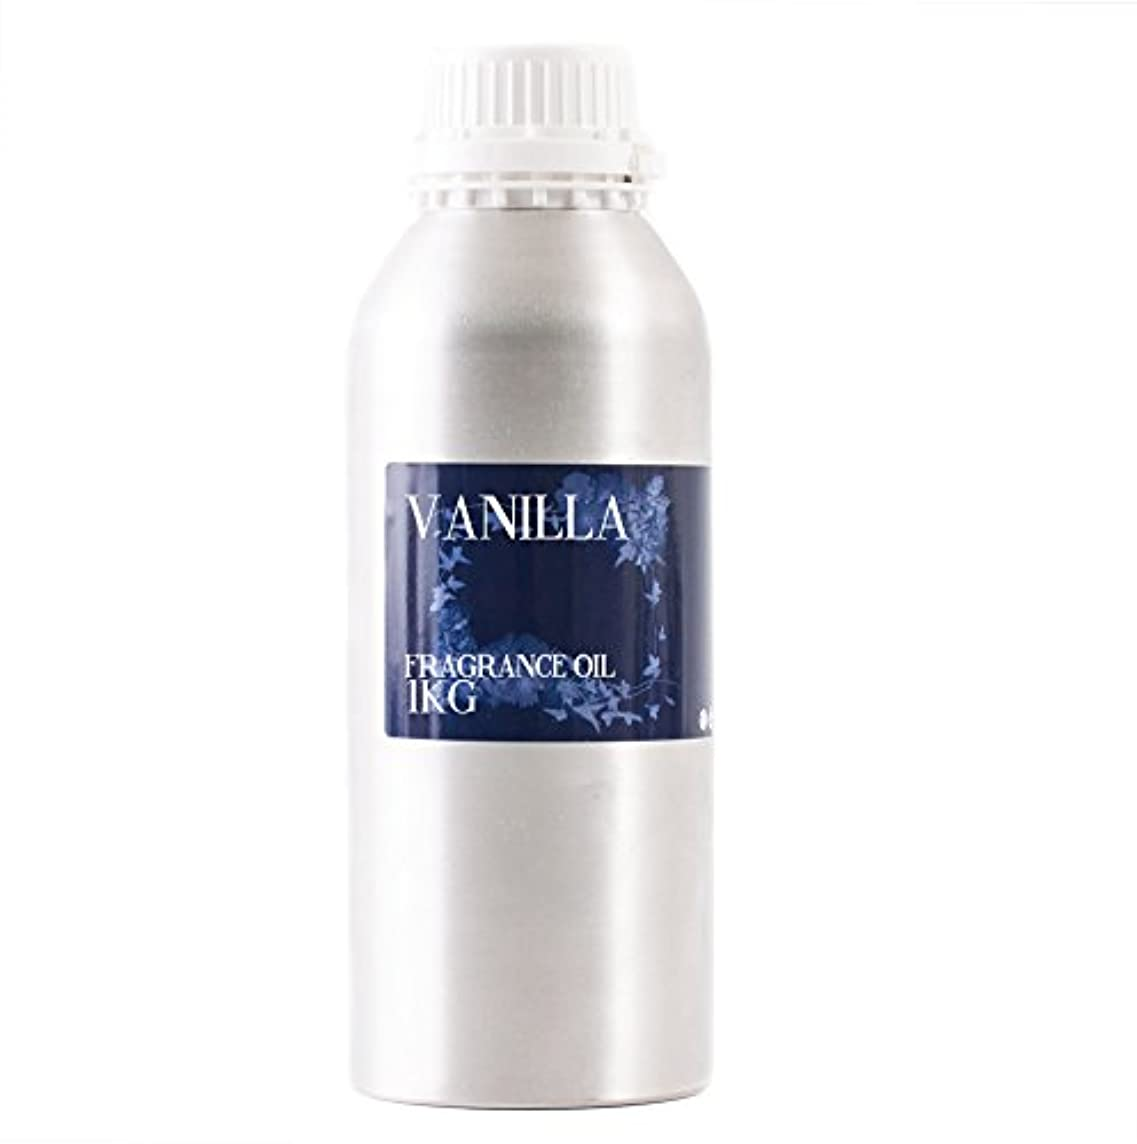 レイア郵便局解くMystic Moments | Vanilla Fragrance Oil - 1Kg